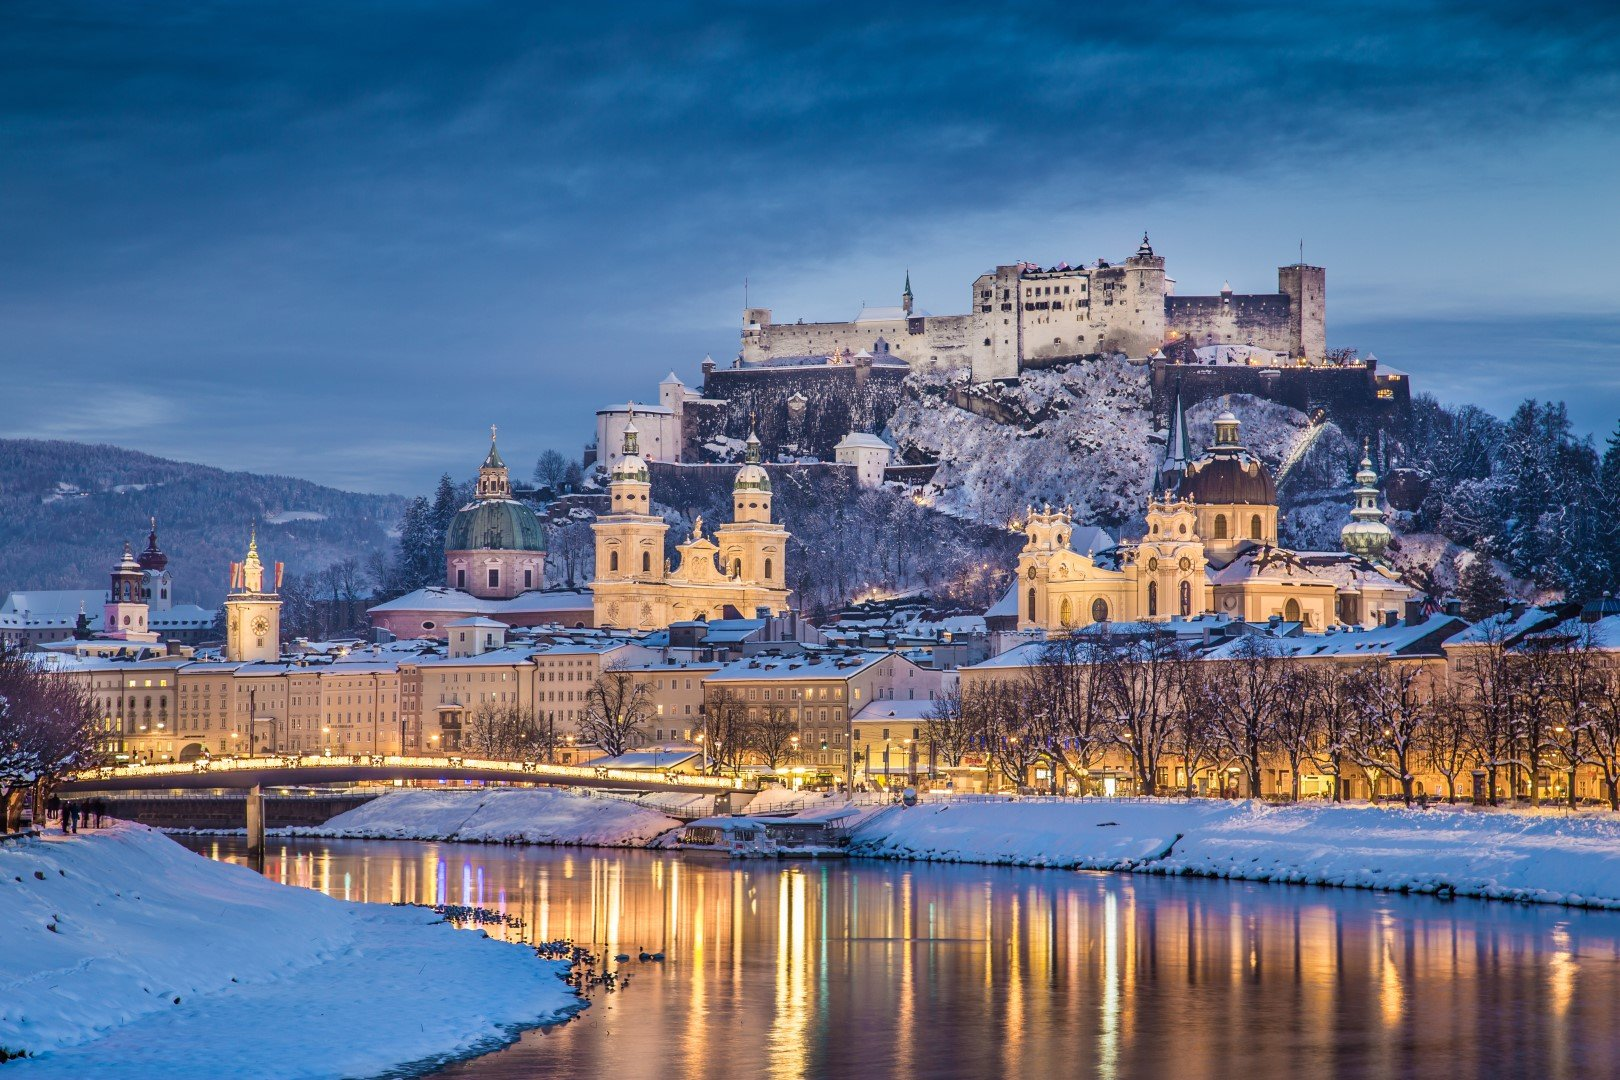 Discover the charming birth place of Wolfgang Amadeus Mozart, enjoy winter wonderland in the Lake Region and visit the most beautiful Christmas market of Austria.